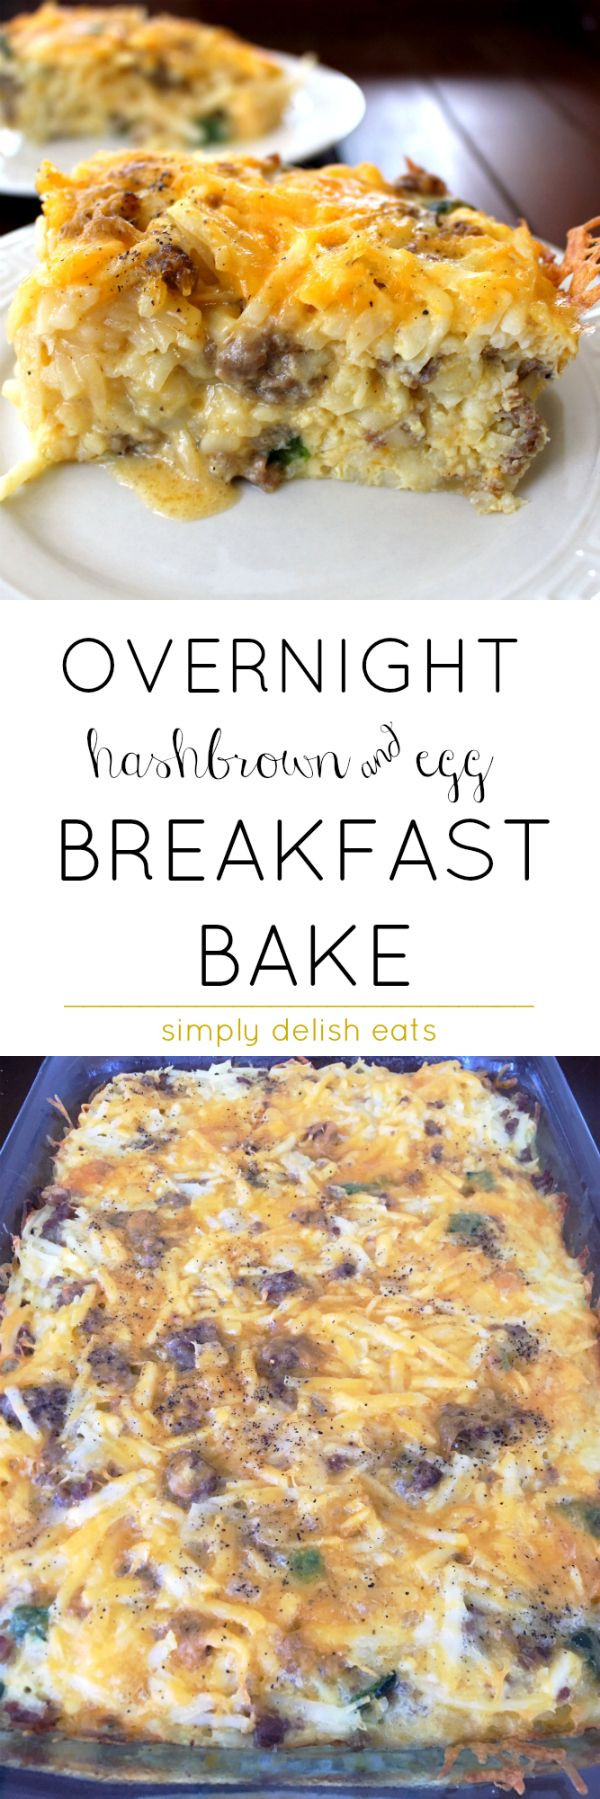 Overnight Breakfast Casserole With Hash Browns And Sausage And Eggs  Best 25 Sausage hashbrown breakfast casserole ideas on